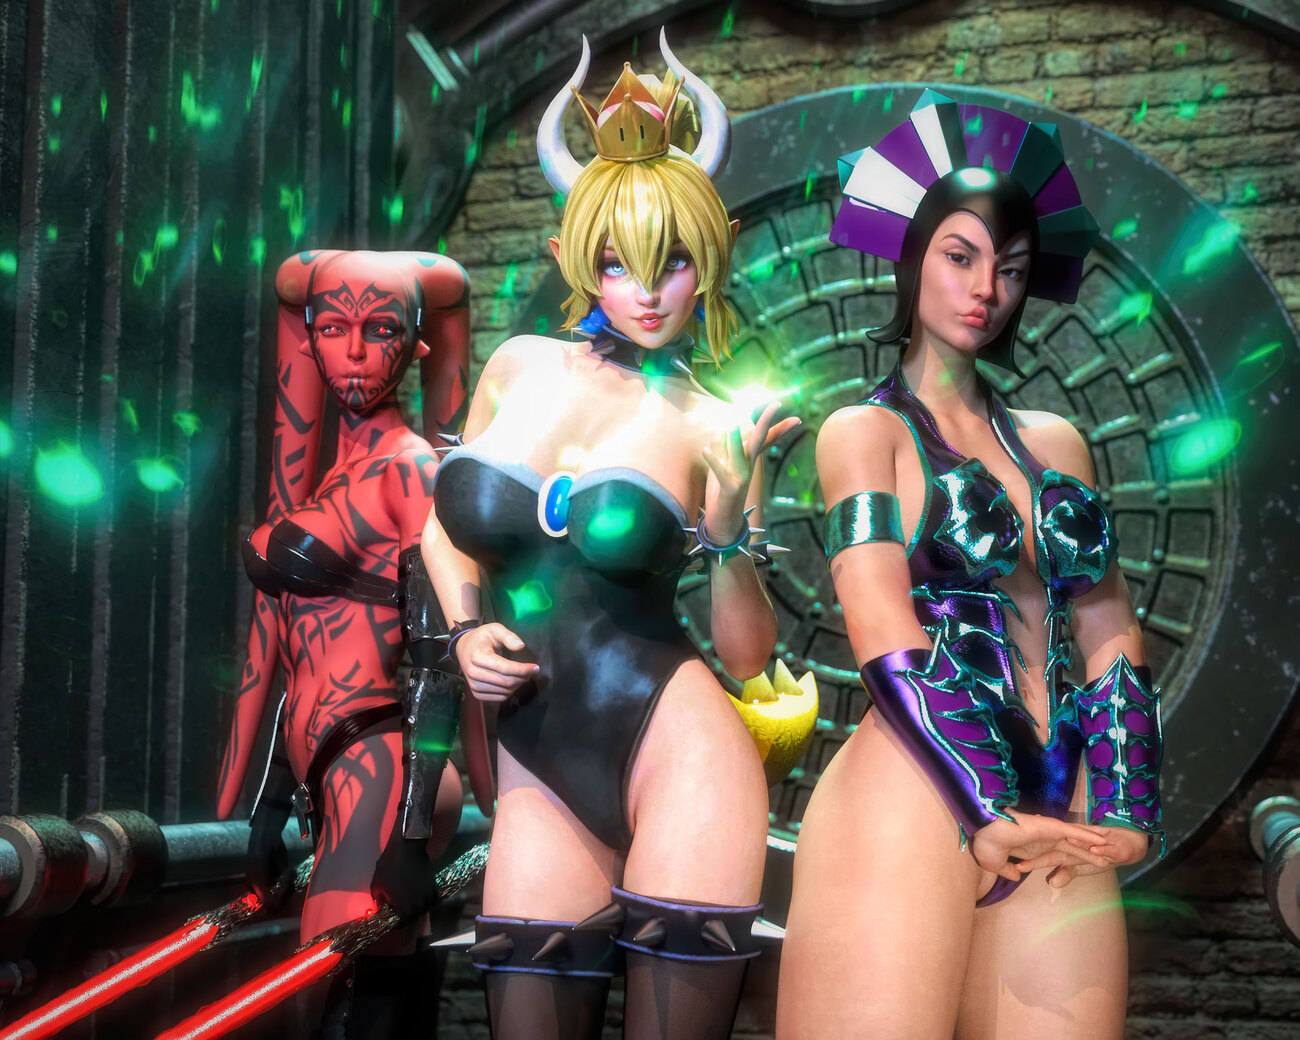 Bad Girls by ertle2